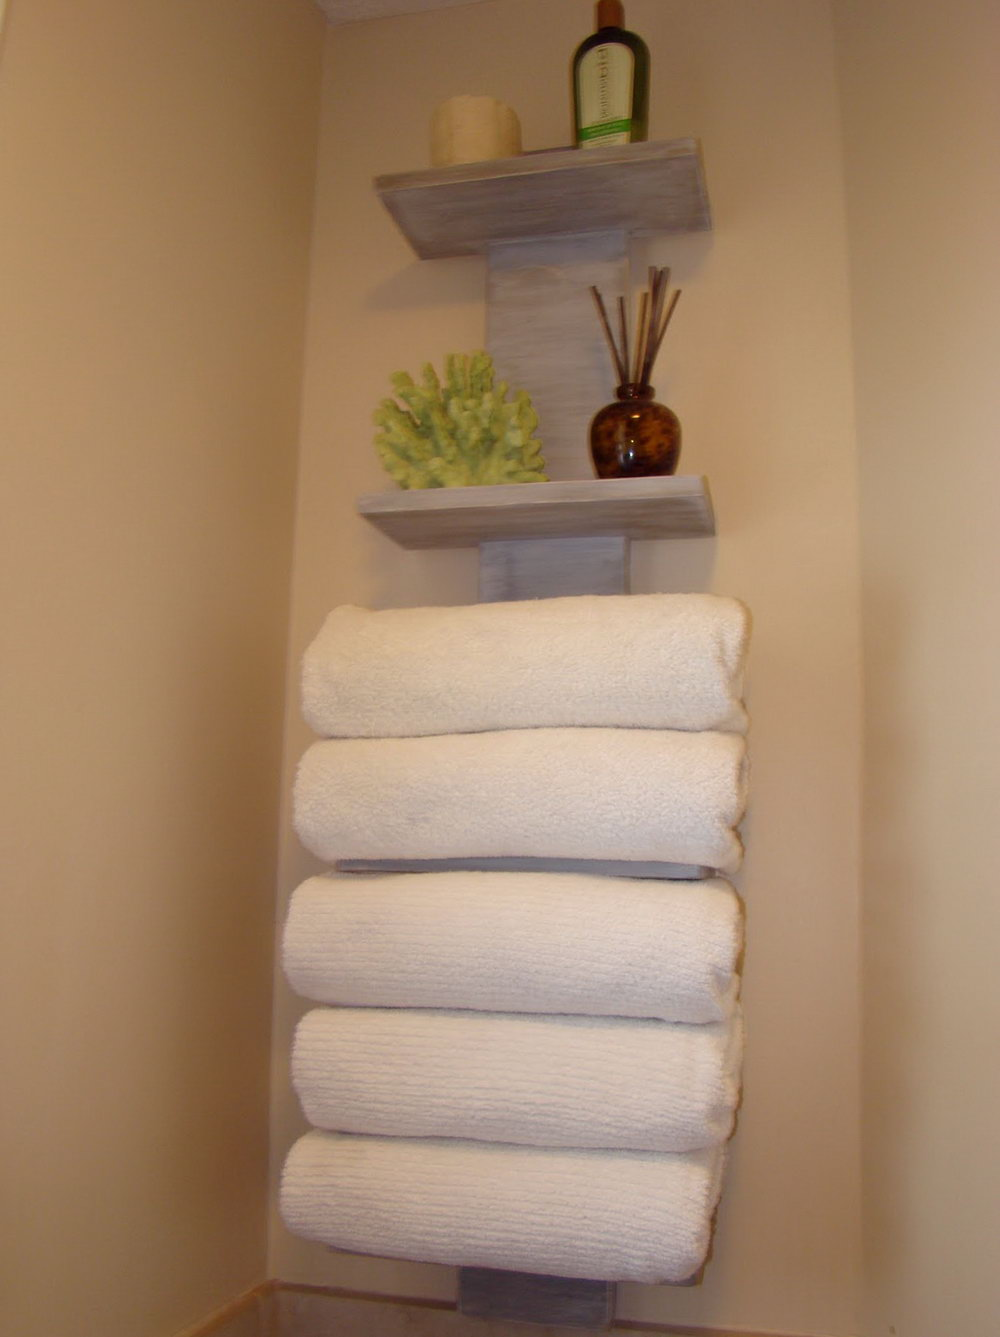 Bathroom Wall Organizer Ideas